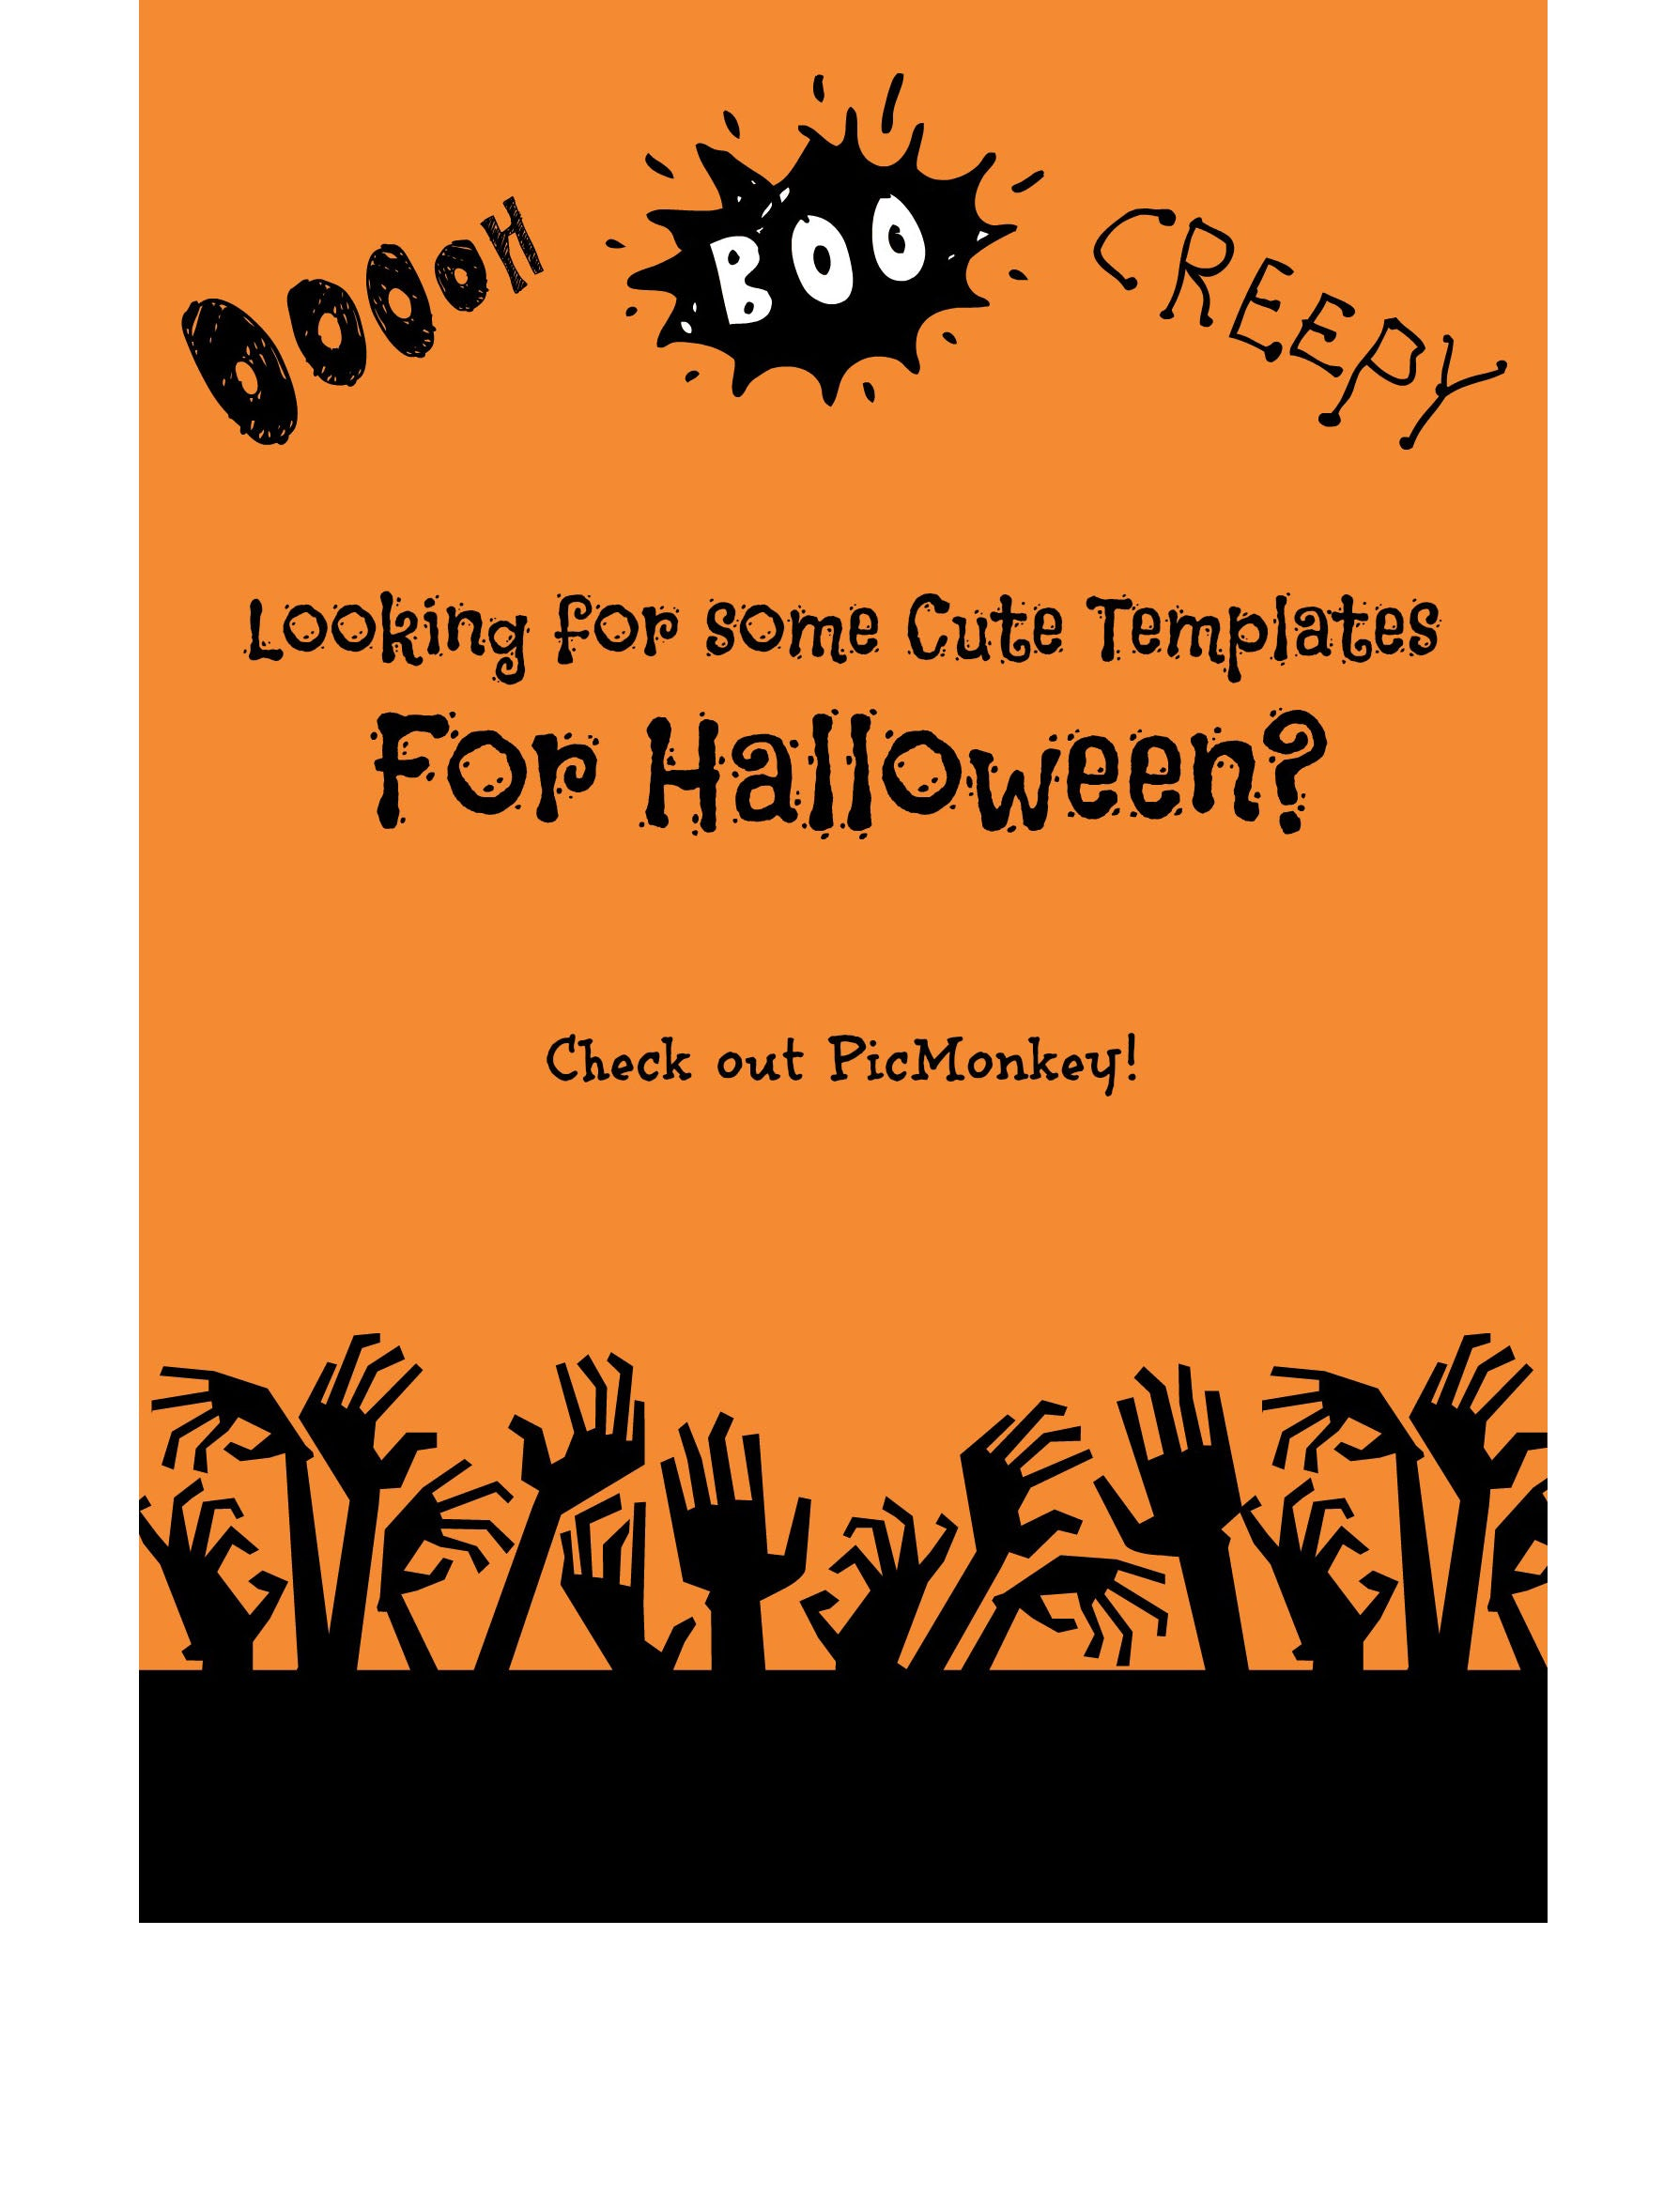 Need Some Cute Templates for Halloween? Try PicMonkey